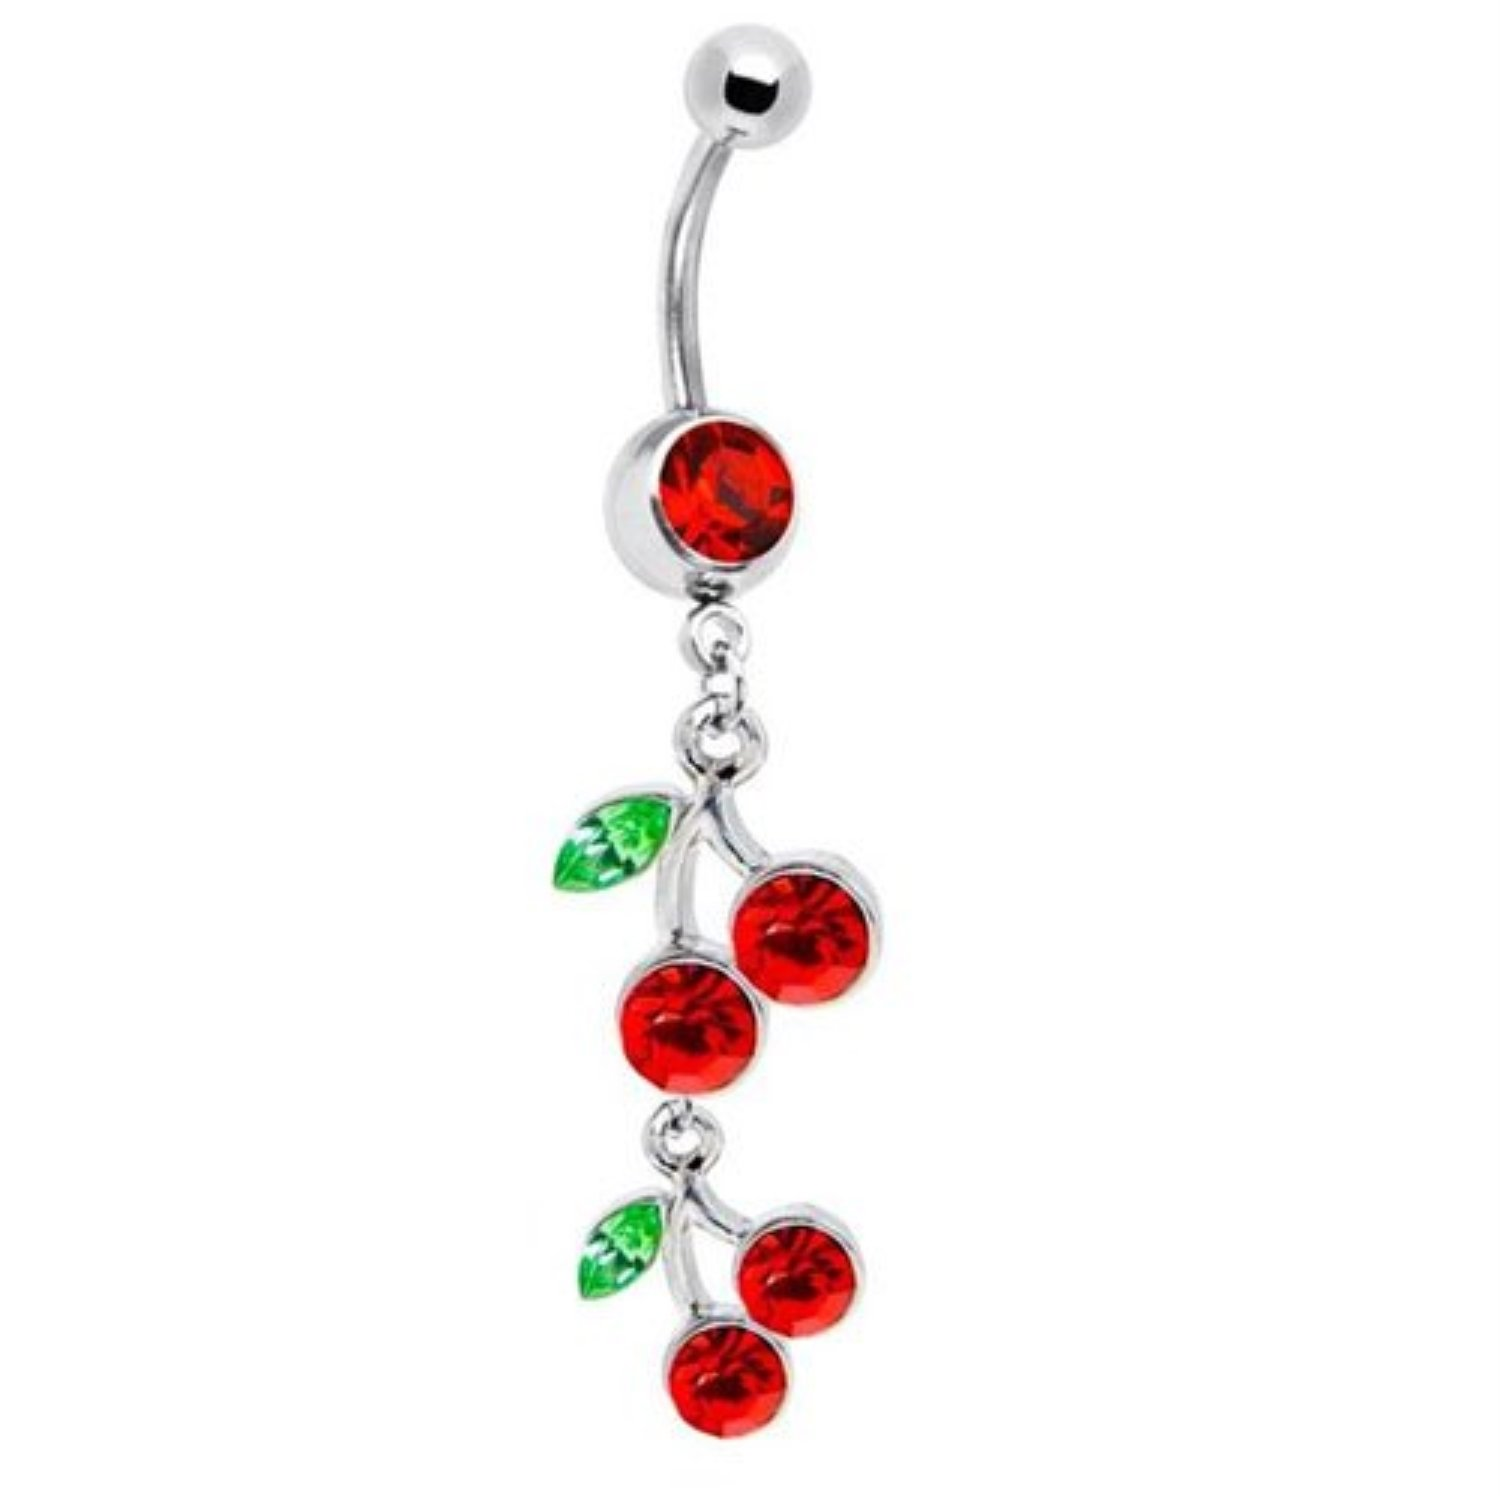 BodyJ4You Cherry Belly Ring Long Dangle Navel Ring Stainless Steel 14G with 1 Belly Retainer BN1125